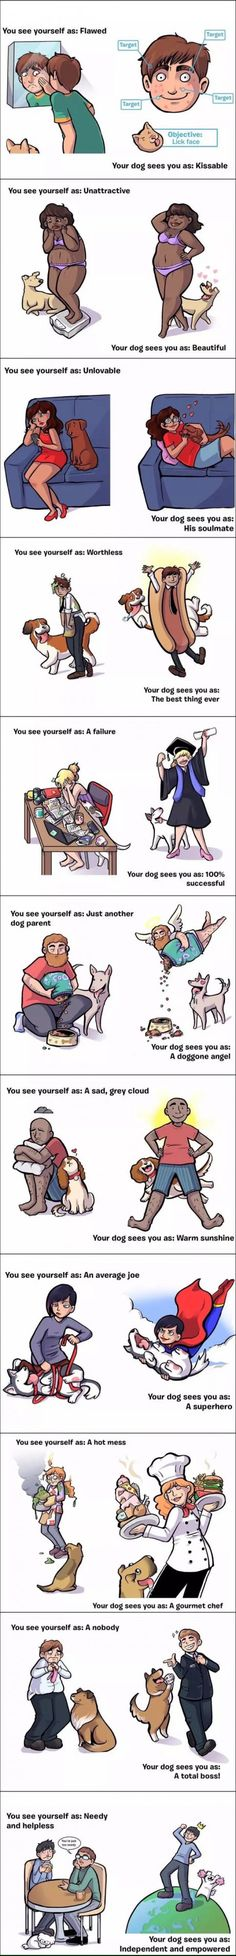 Dogs are wonderful.